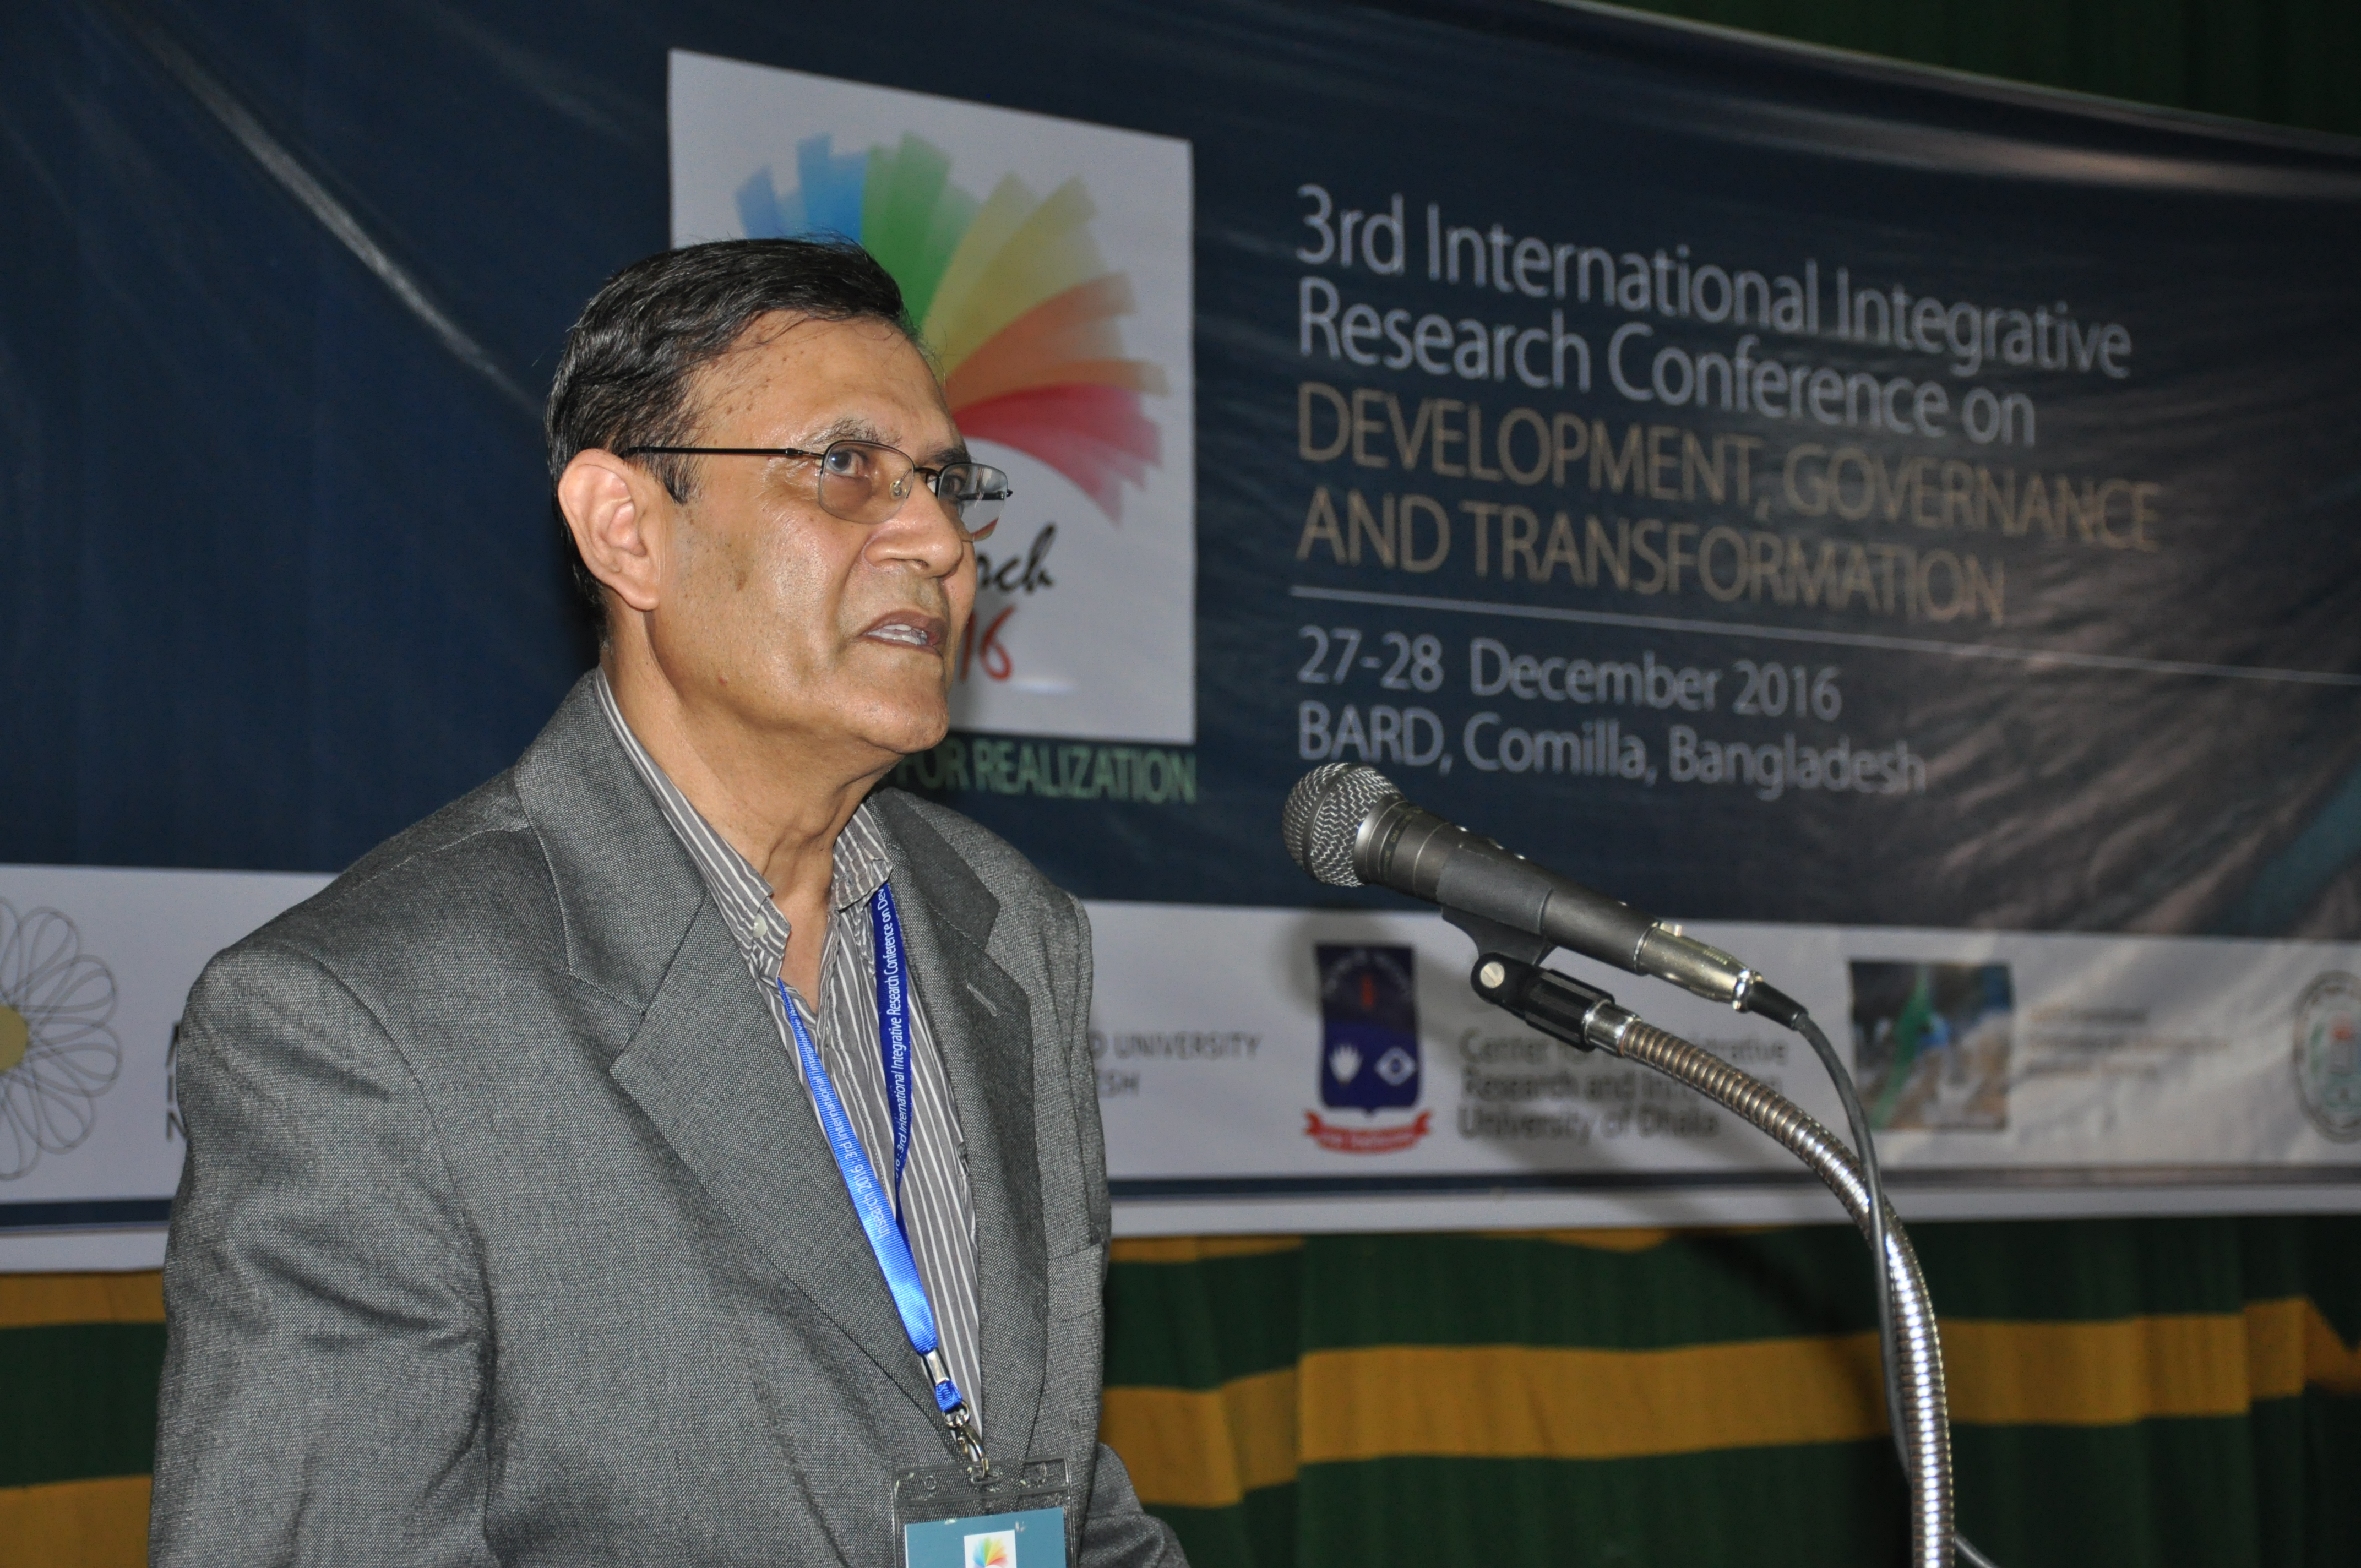 Prof. Ahmed Shafiqul Haque, Keynote Speaker 2016,